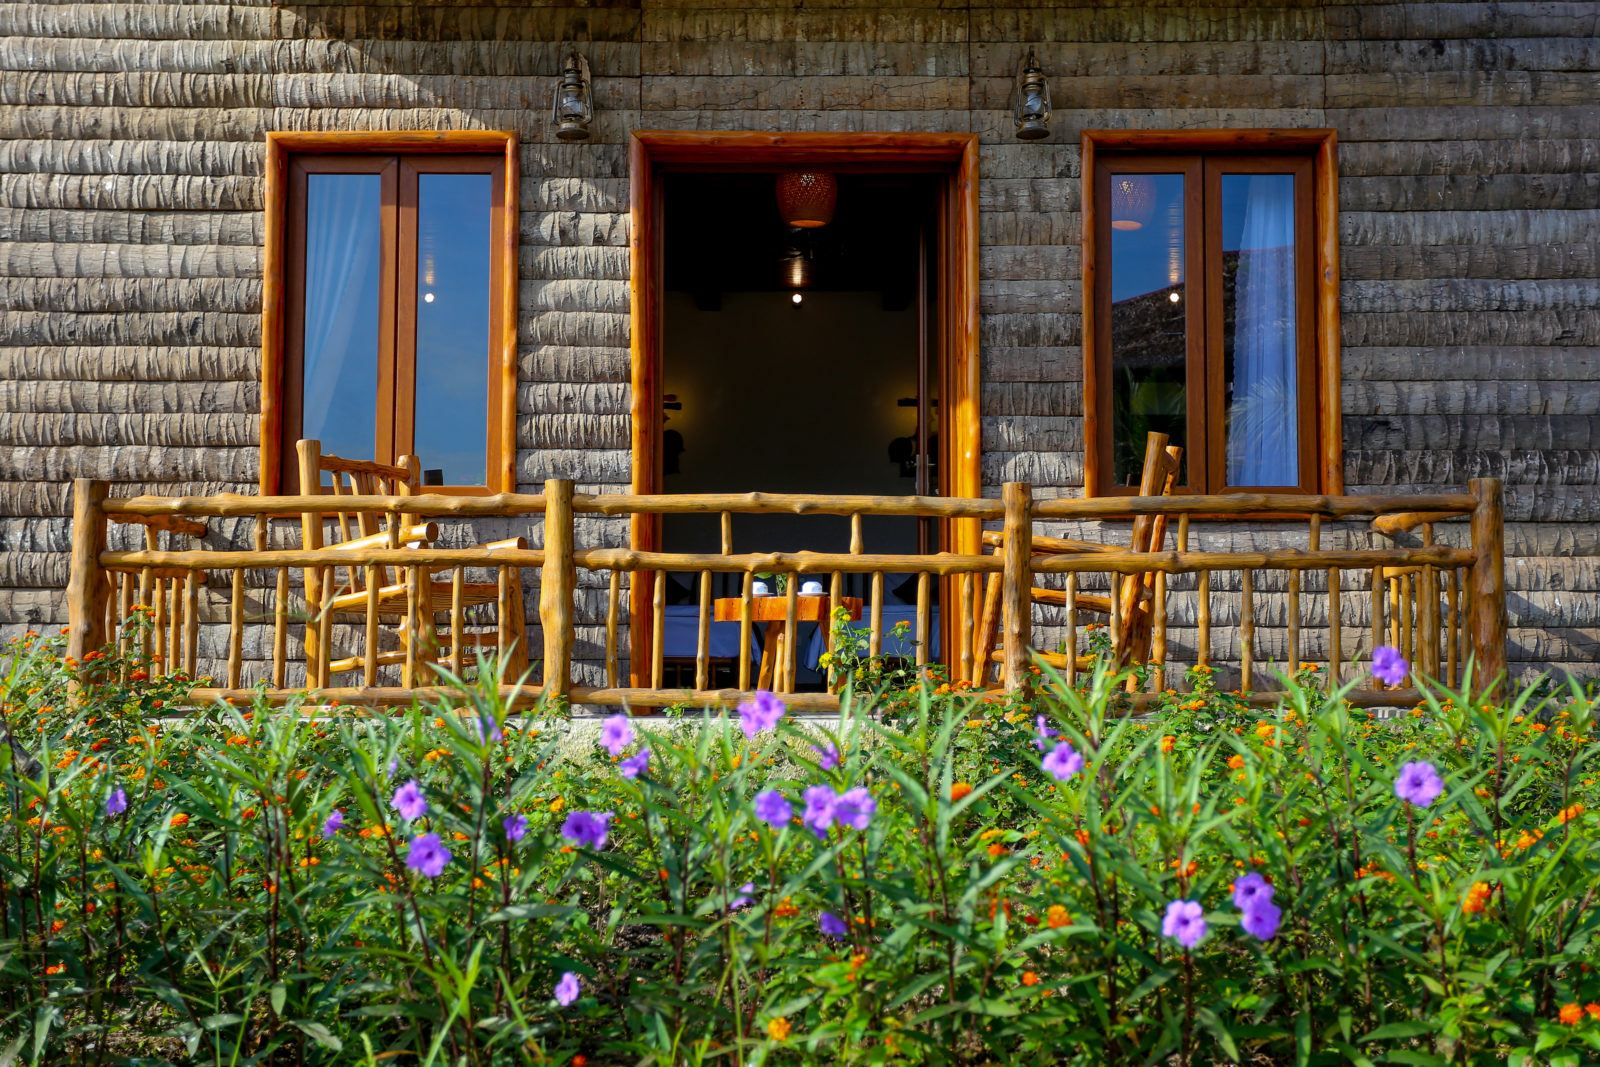 The Mekong Delta welcomes Can Tho Ecolodge, an Eco luxury accommodation in South Vietnam4